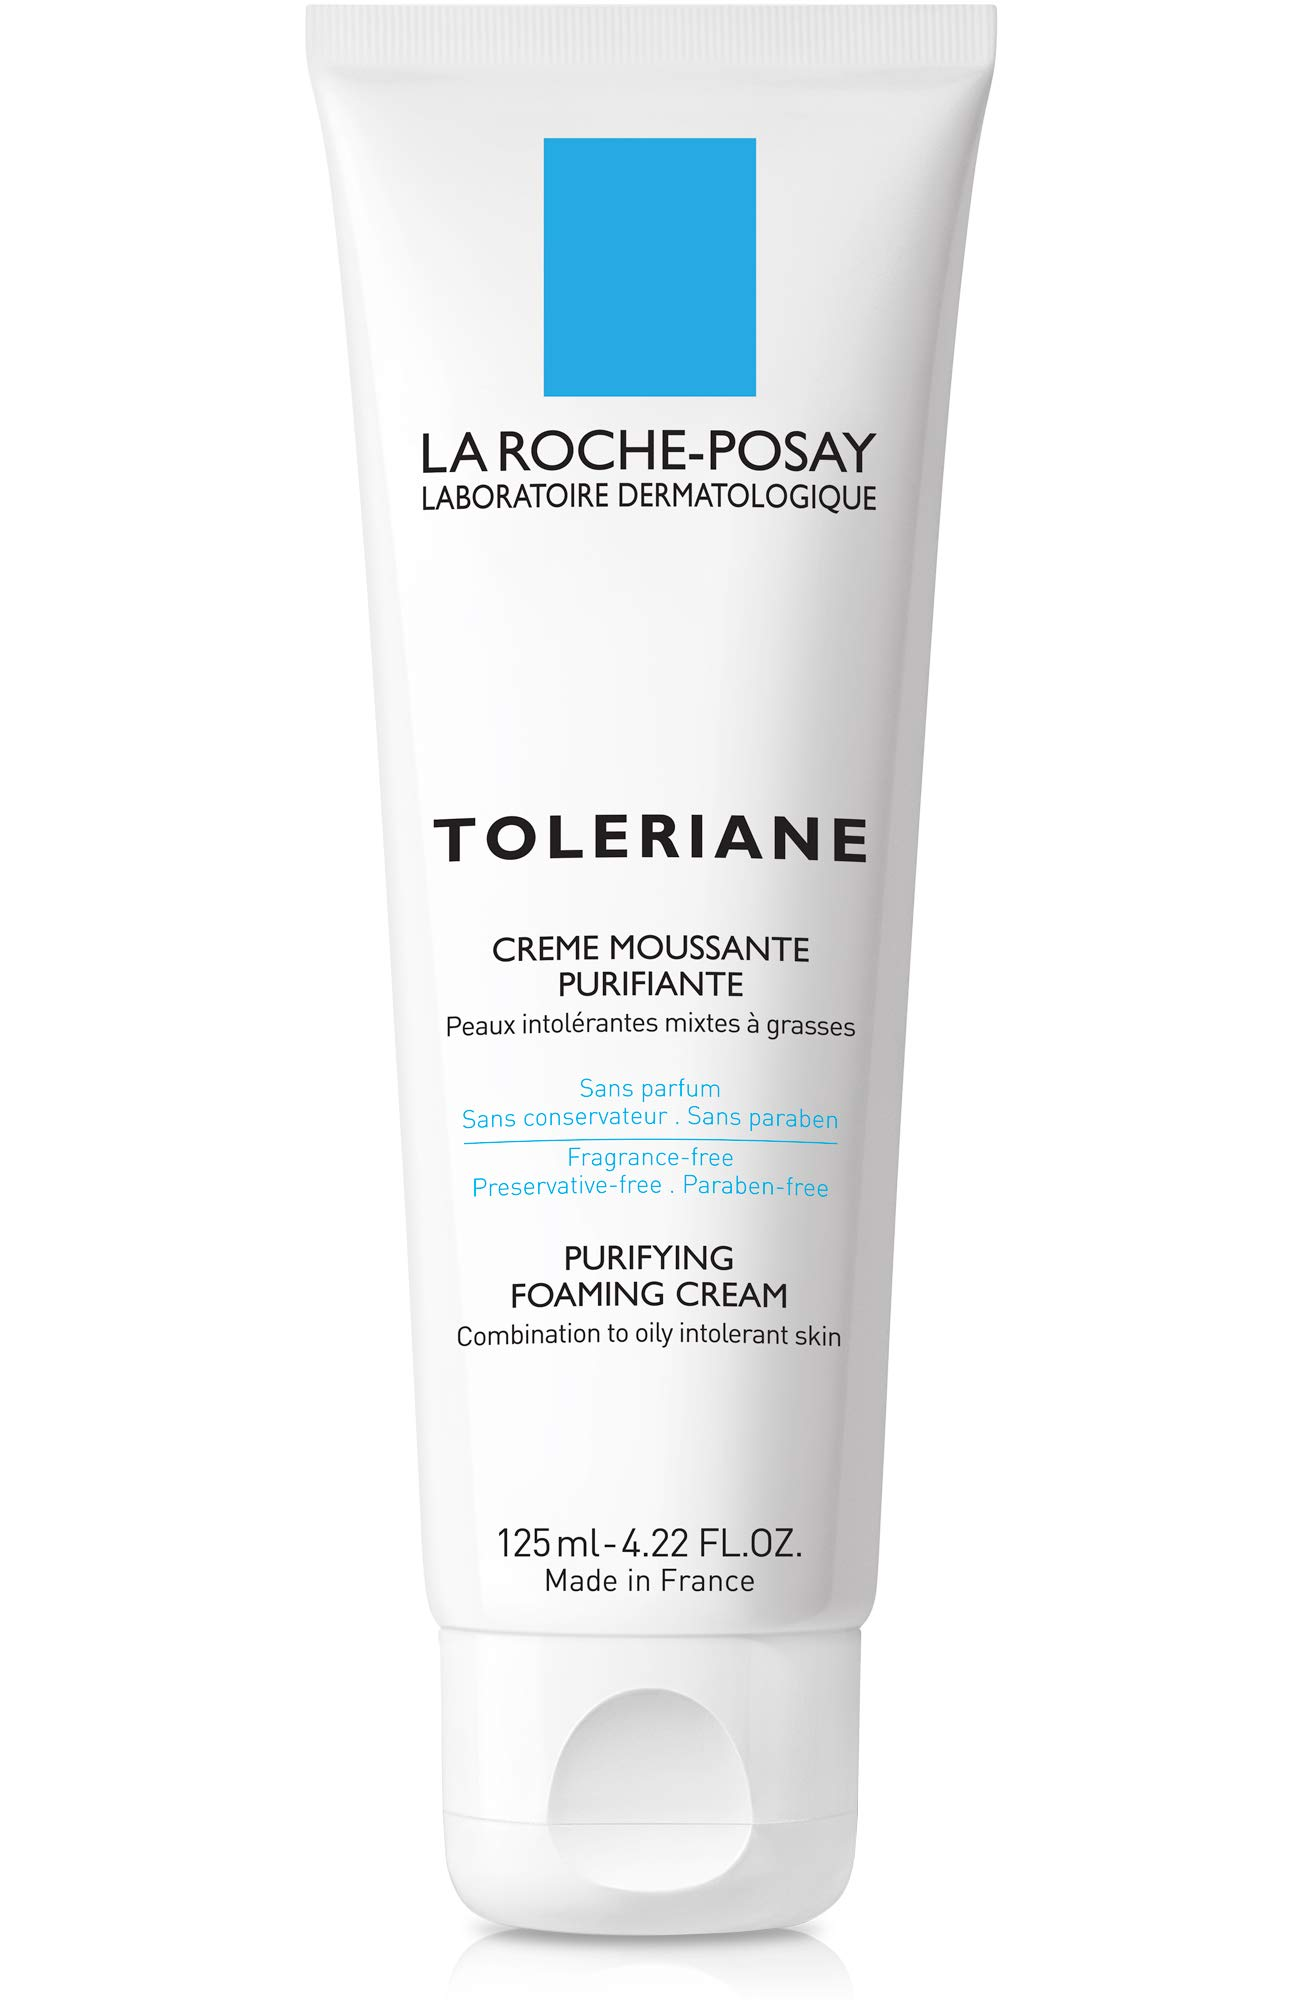 La Roche-Posay Toleriane Purifying Foaming Cream Cleanser, 4.22 Fl. Oz. by La Roche-Posay